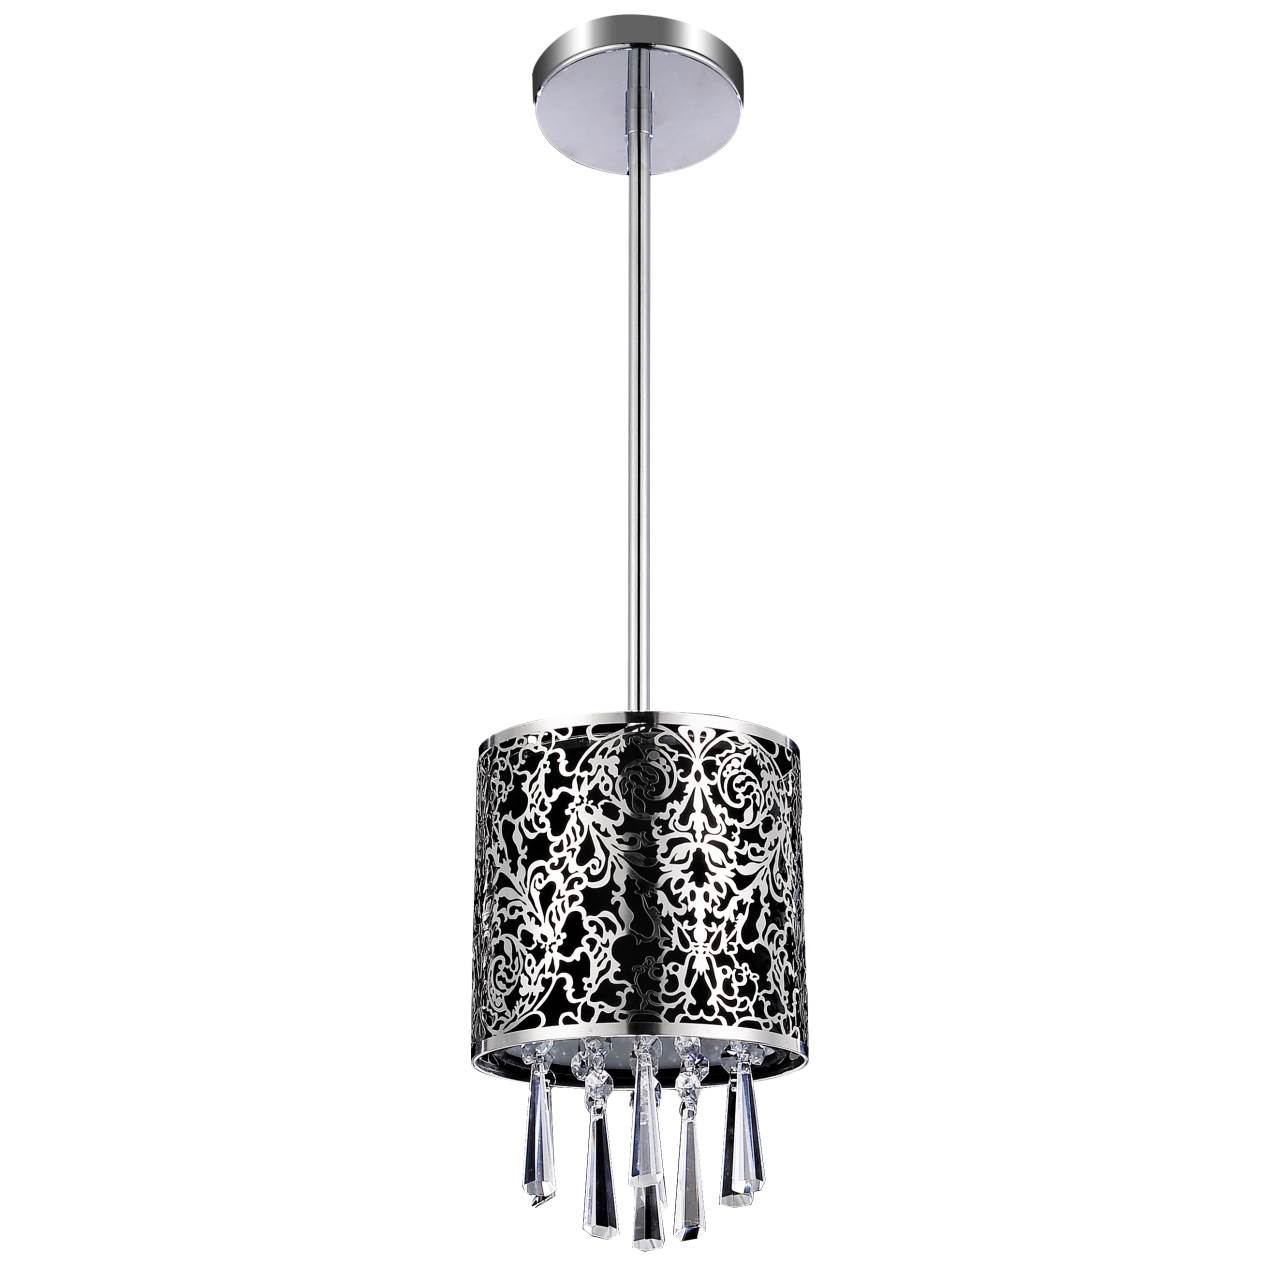 picture of 6 drago modern crystal round mini pendant black fabric stainless steel shade 1 black fabric lighting